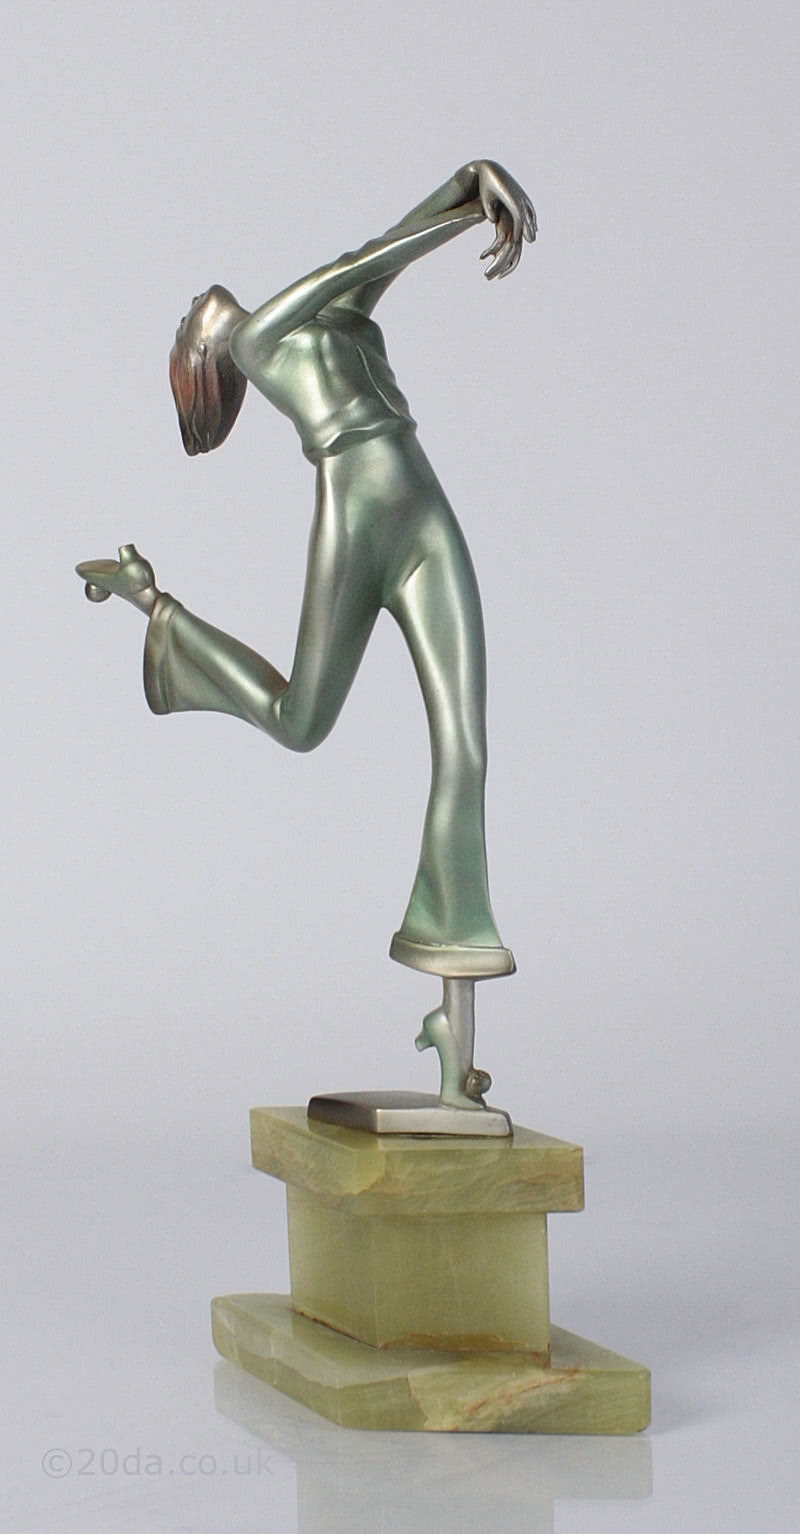 Adolph- art deco dancing lady figurine